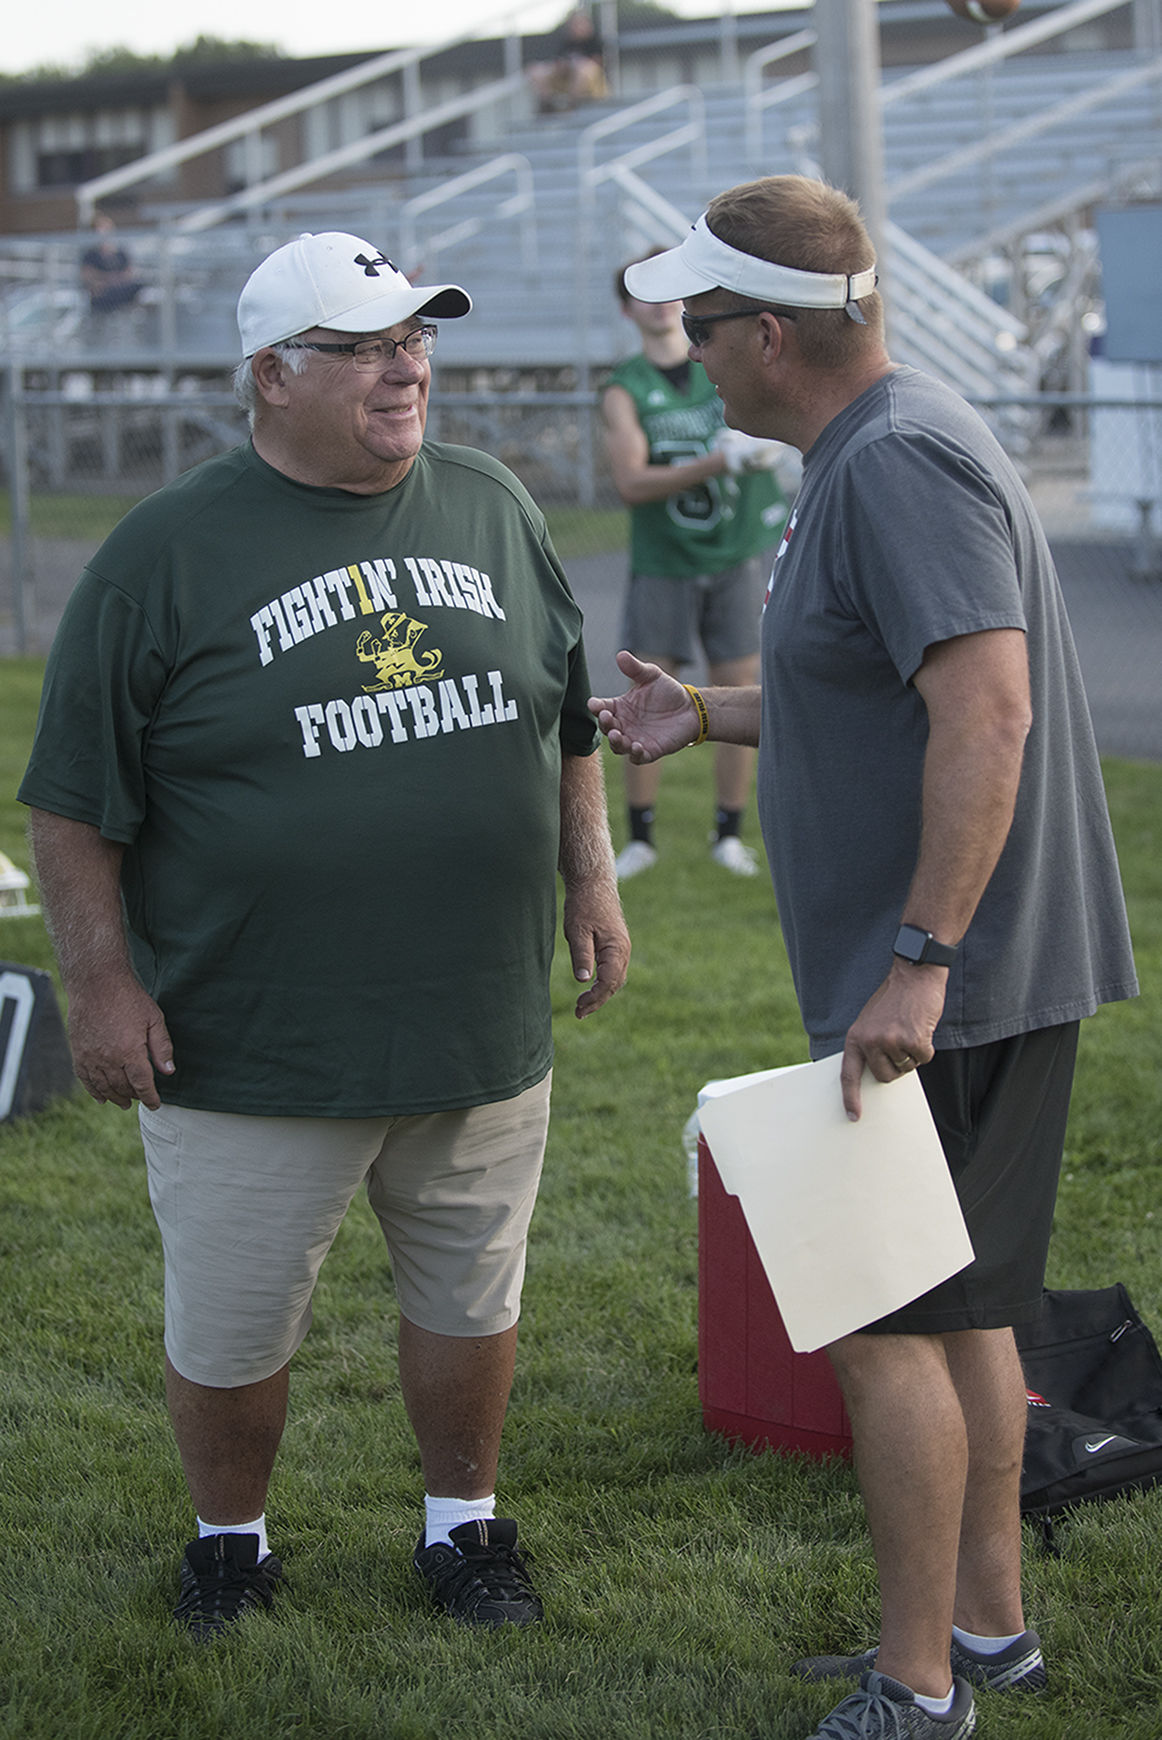 Hall-of-Fame coaches meet up for 7-on-7